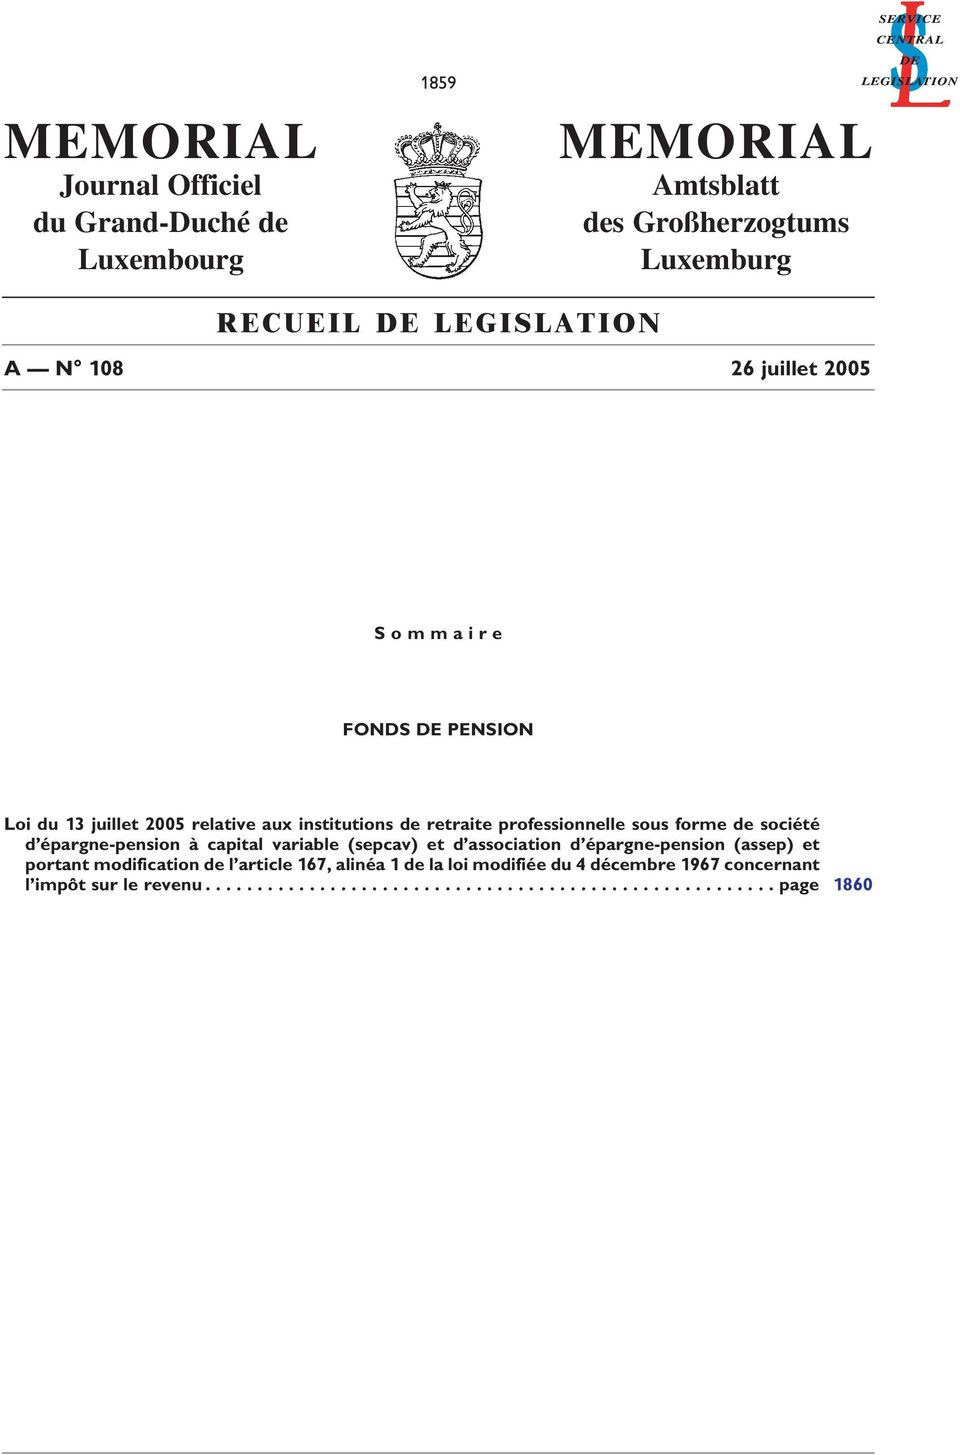 société d épargne-pension à capital variable (sepcav) et d association d épargne-pension (assep) et portant modification de l article 167,